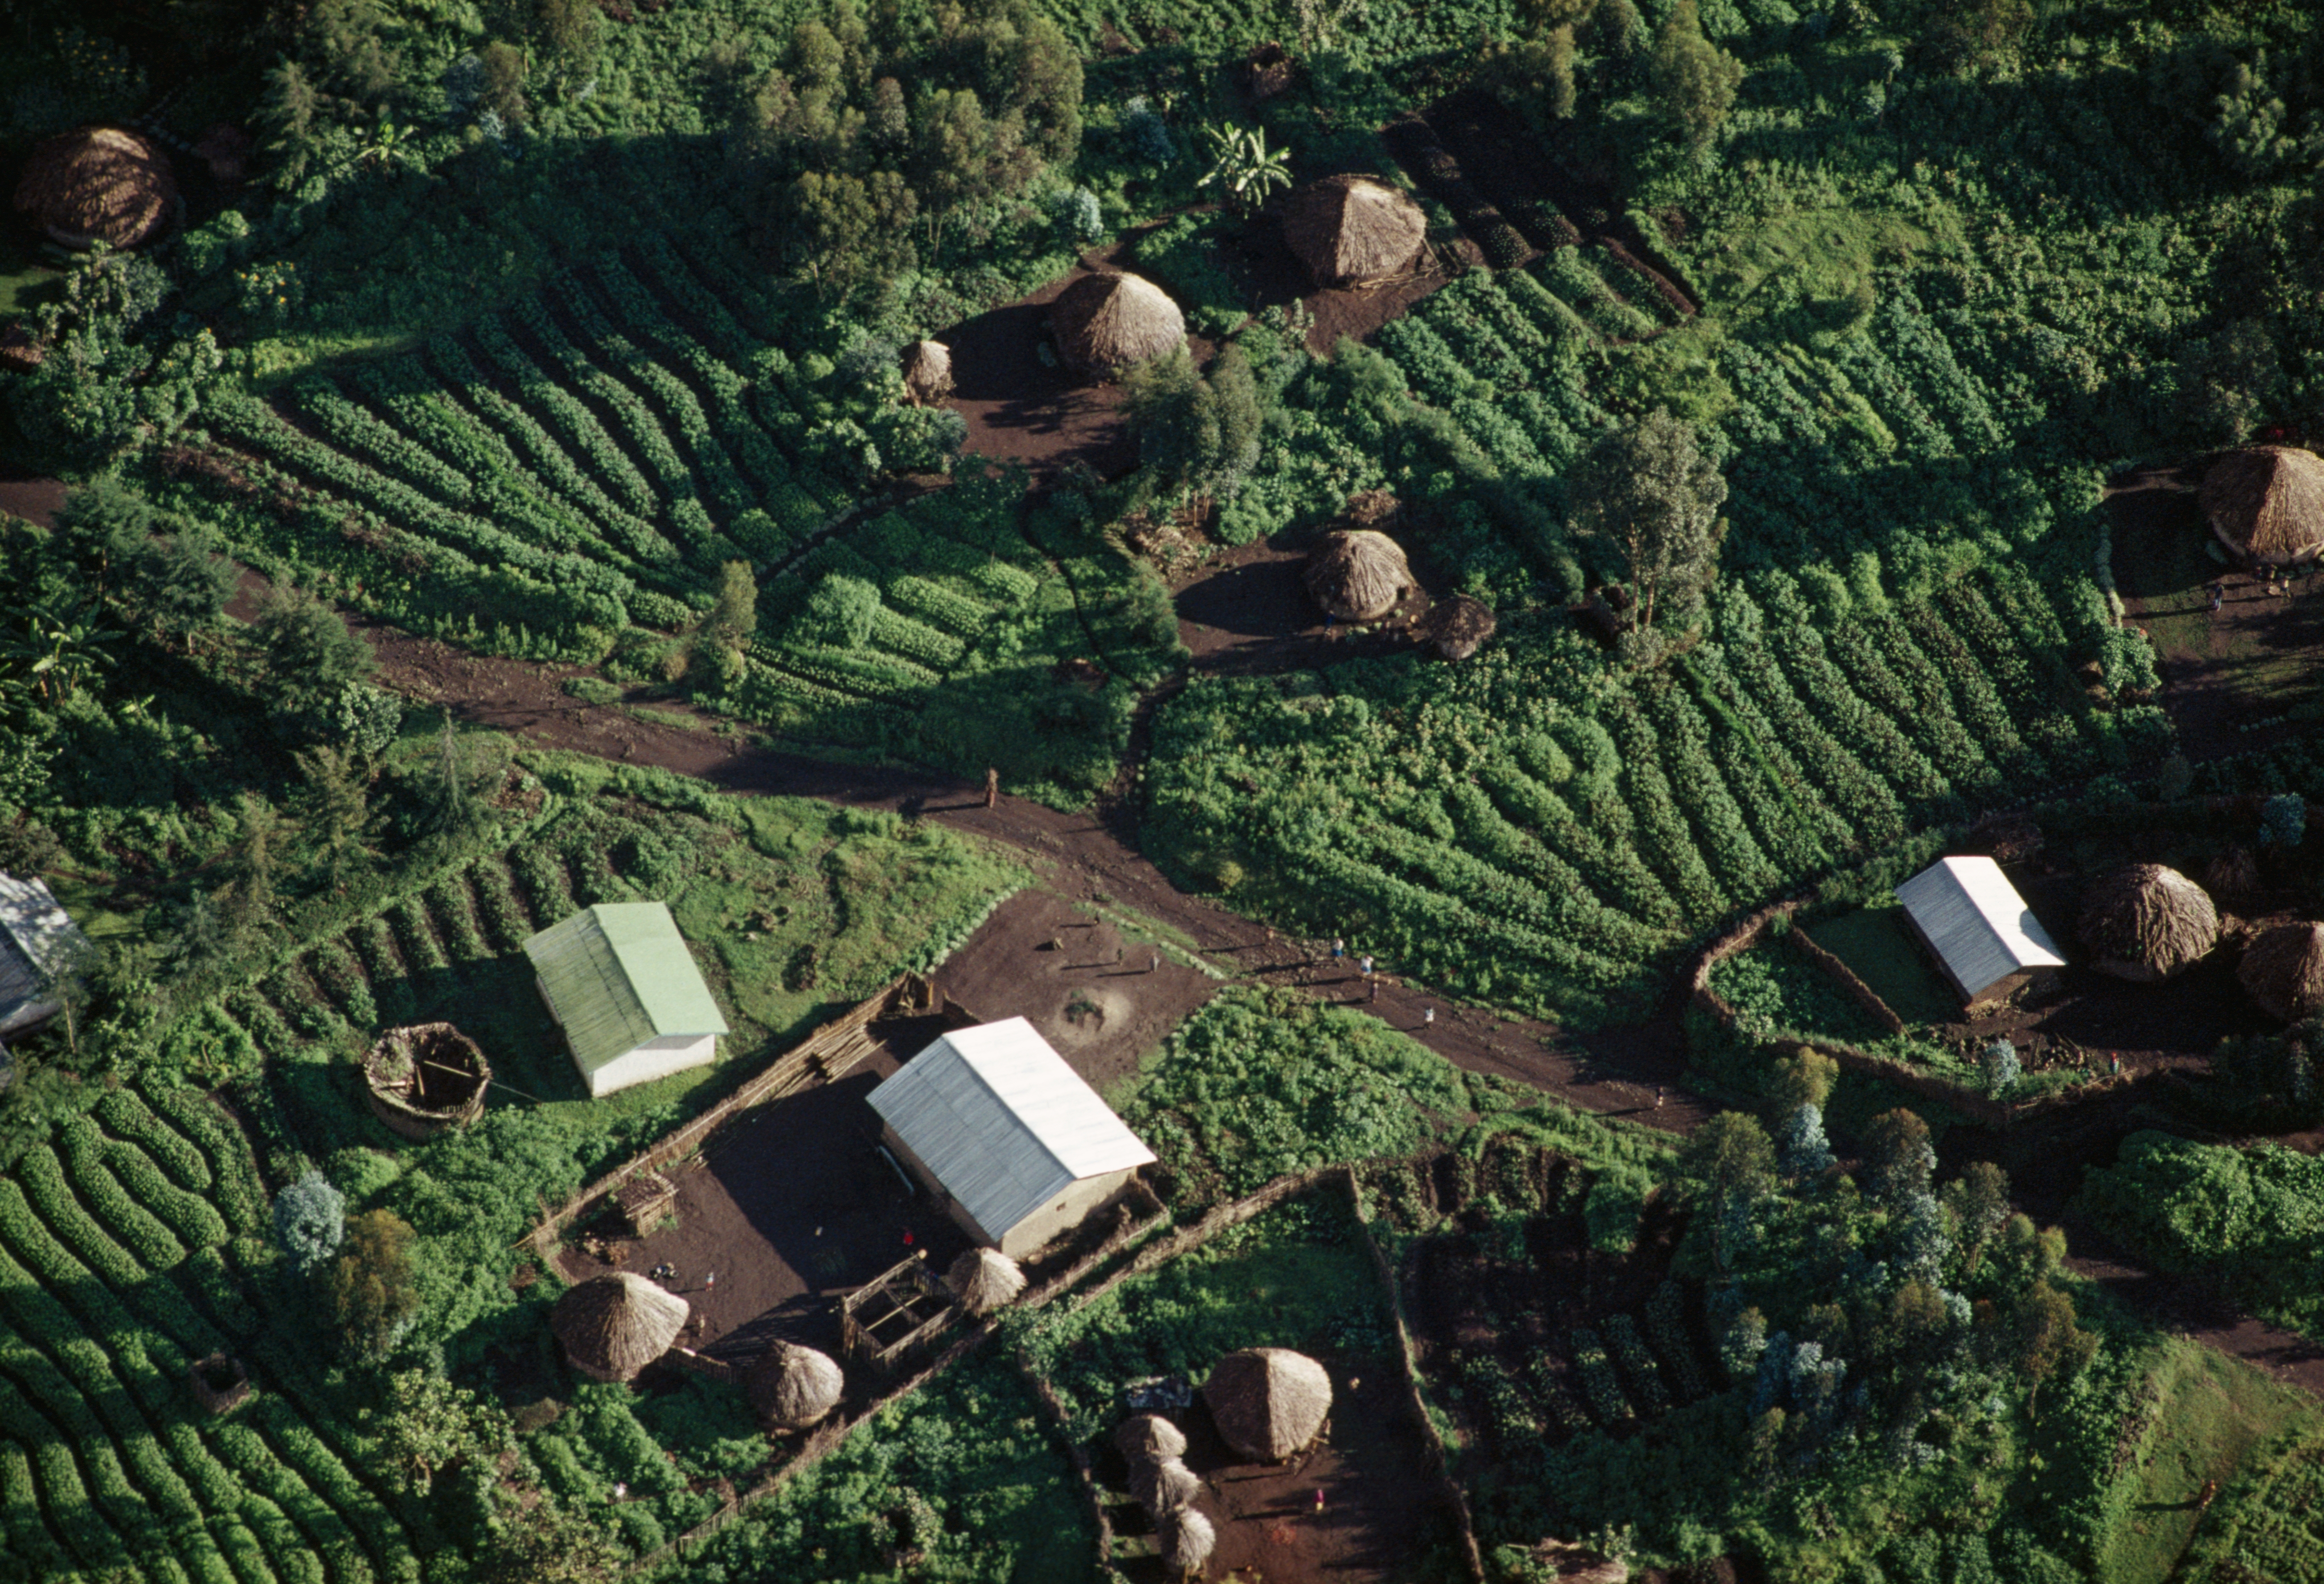 Tea plantation with houses, aerial view, Kivu region, Democratic Republic of the Congo.